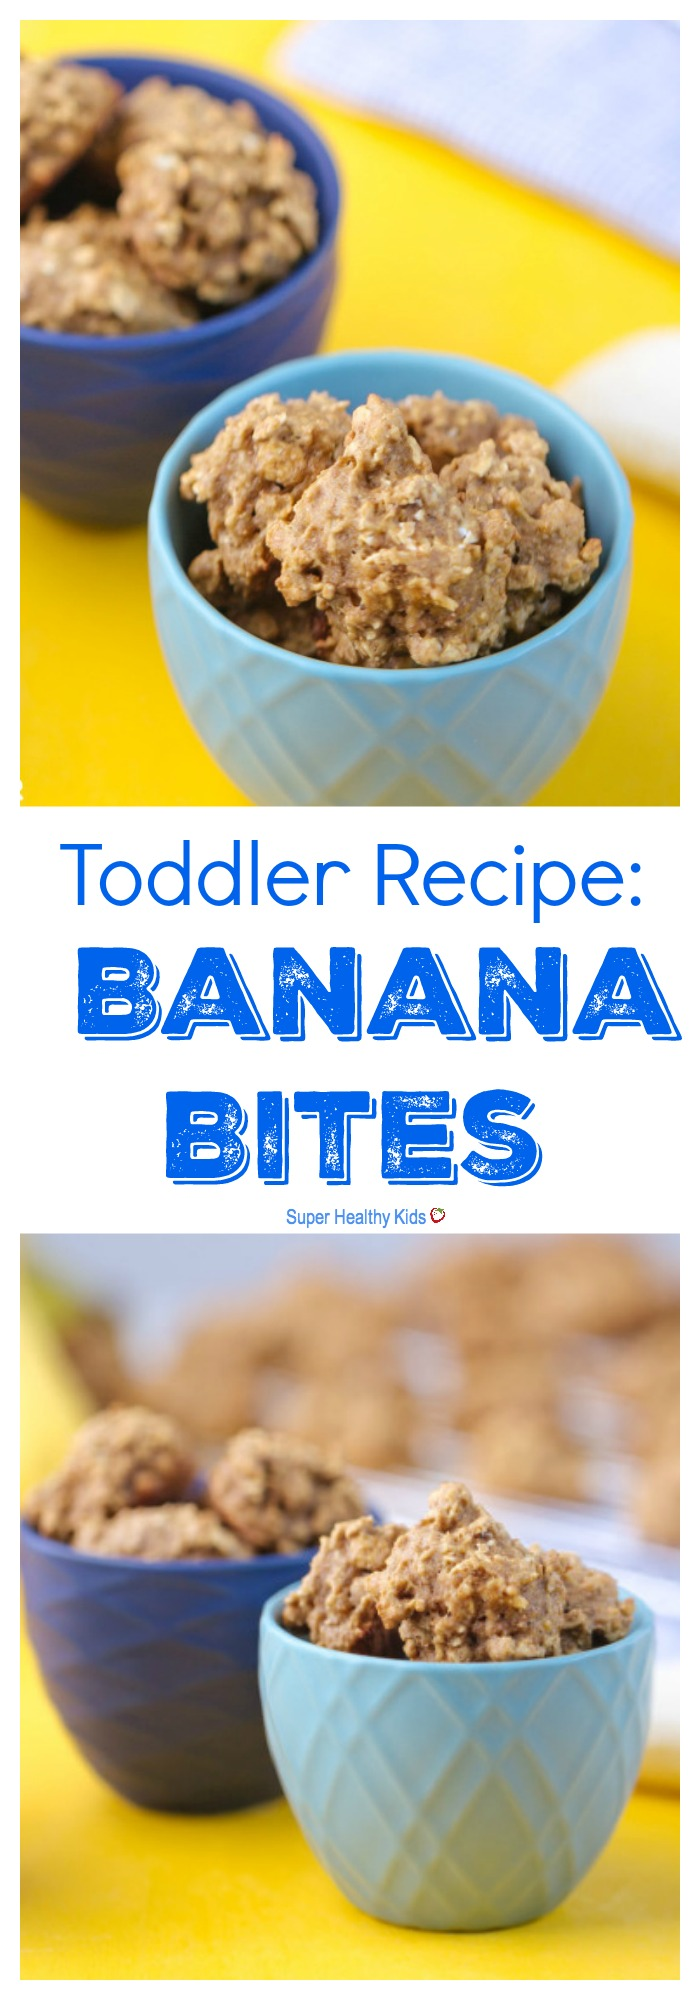 FOOD - Toddler Recipe: Banana Bites. Healthy finger food, for toddlers! http://www.superhealthykids.com/banana-cookies/